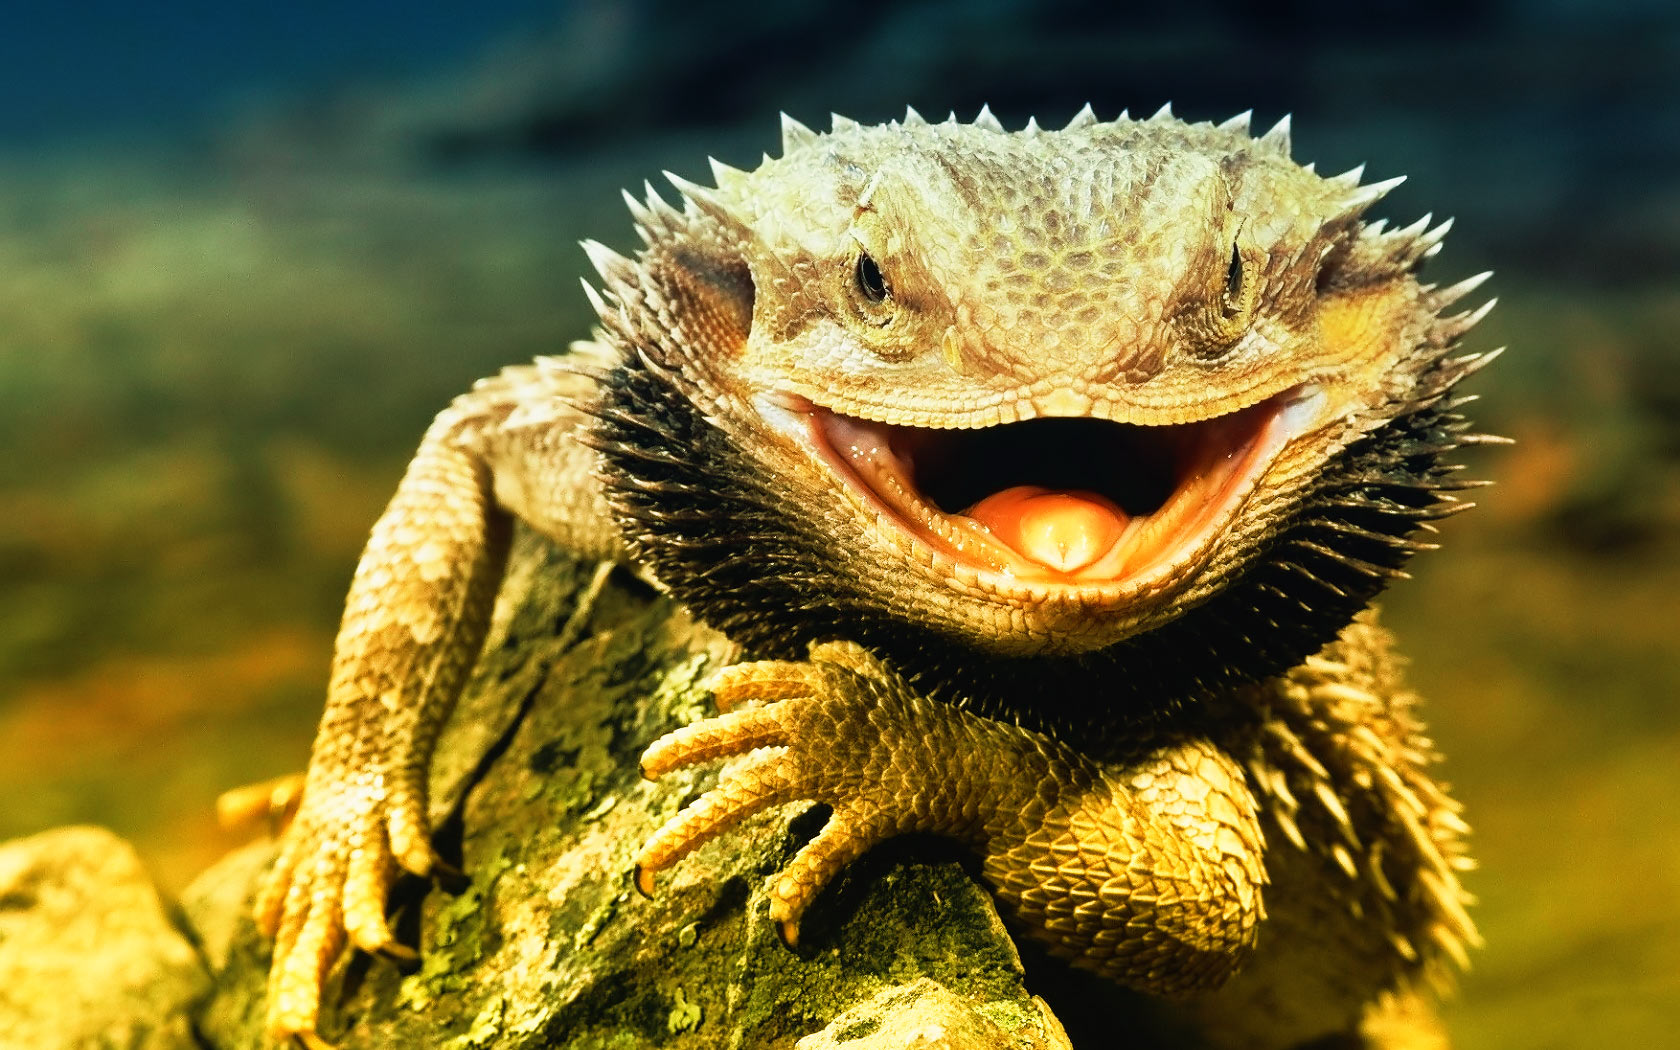 hd lizard wallpaper